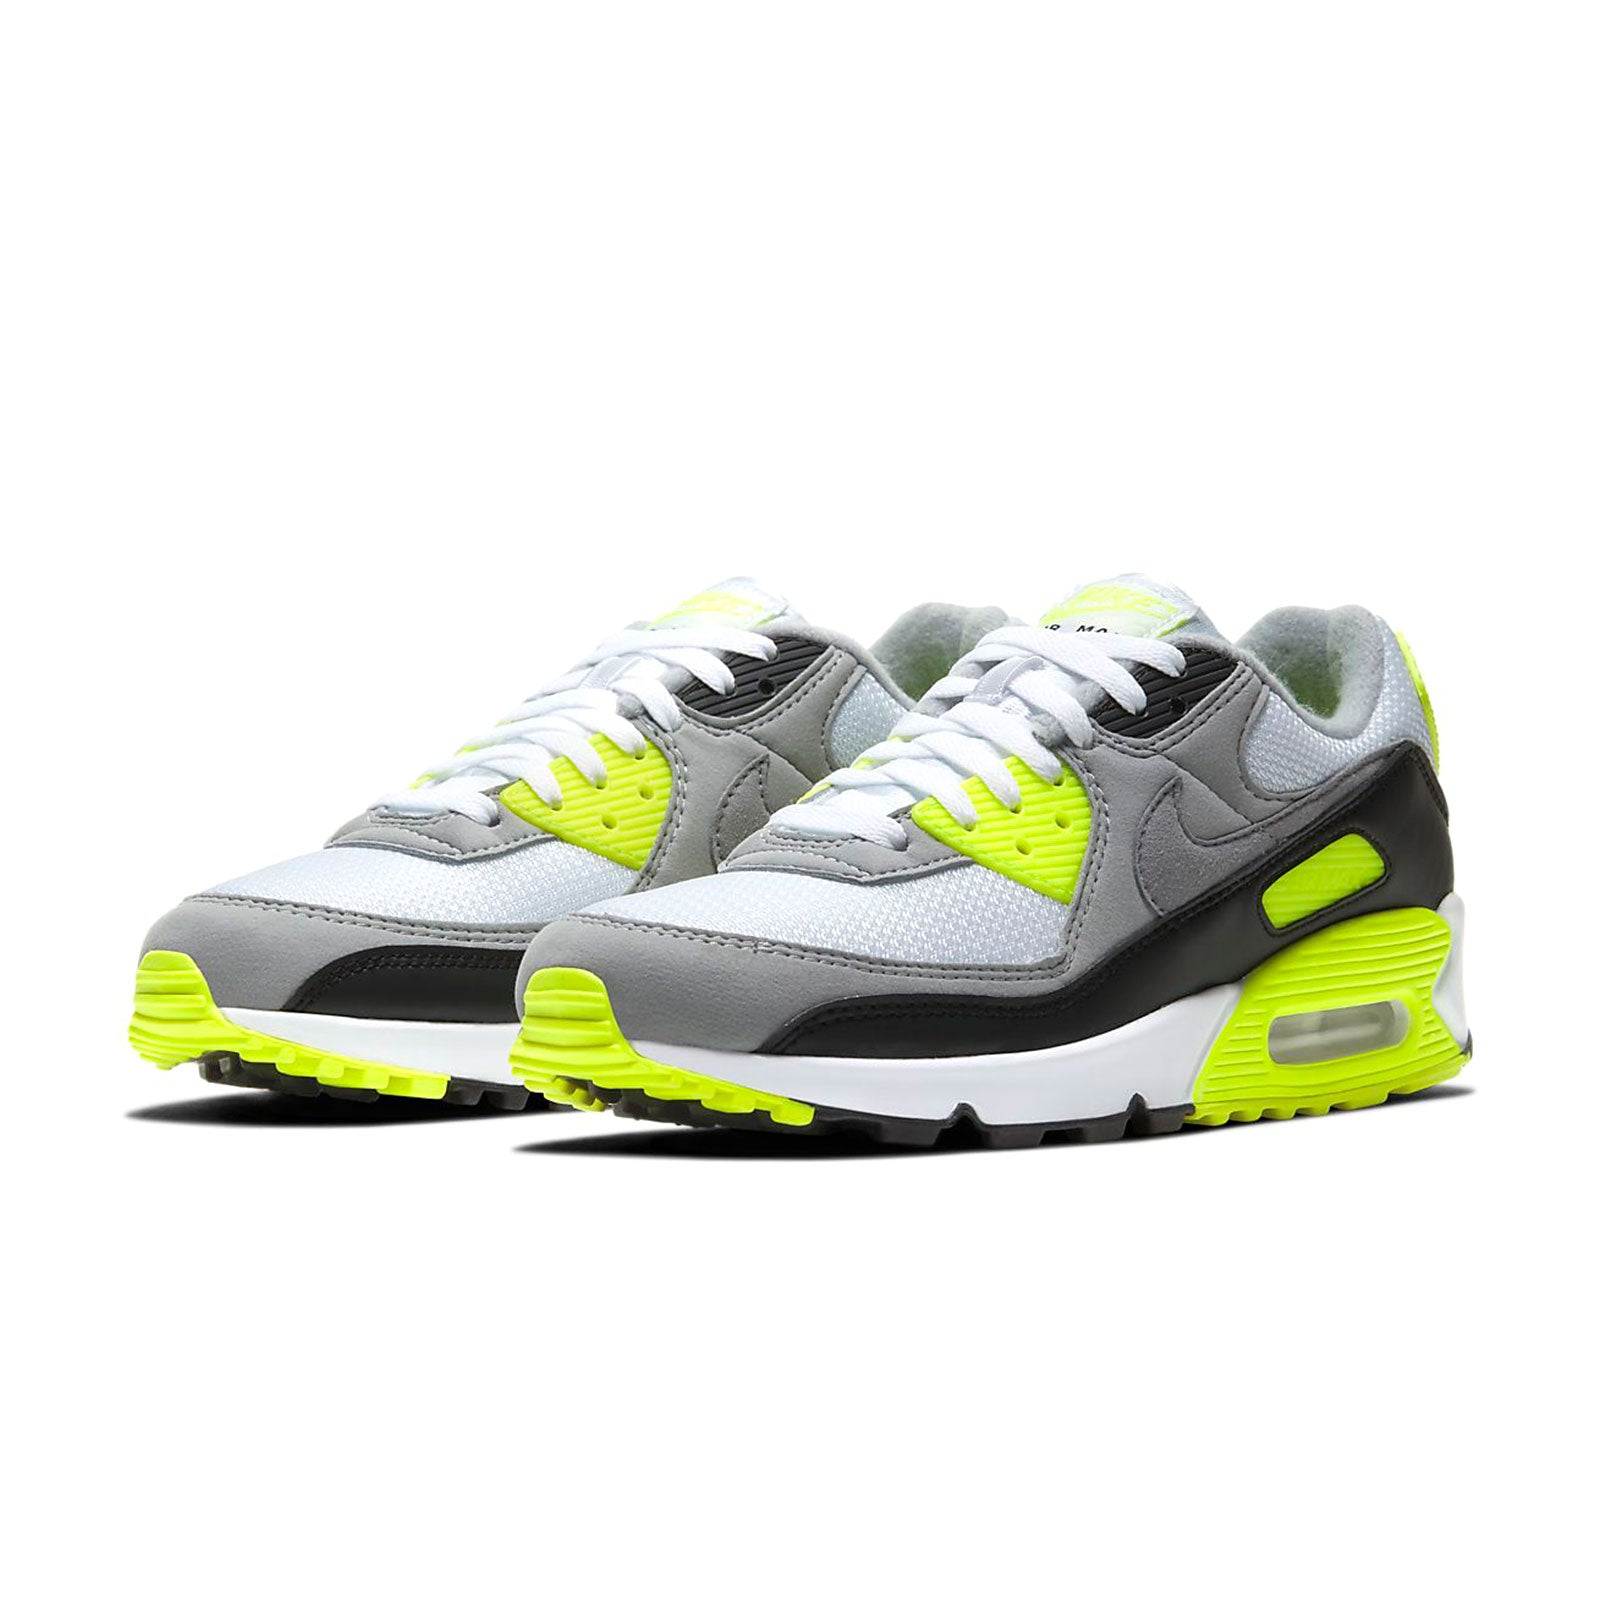 Air Max 90 CD0881-103 White/Volt